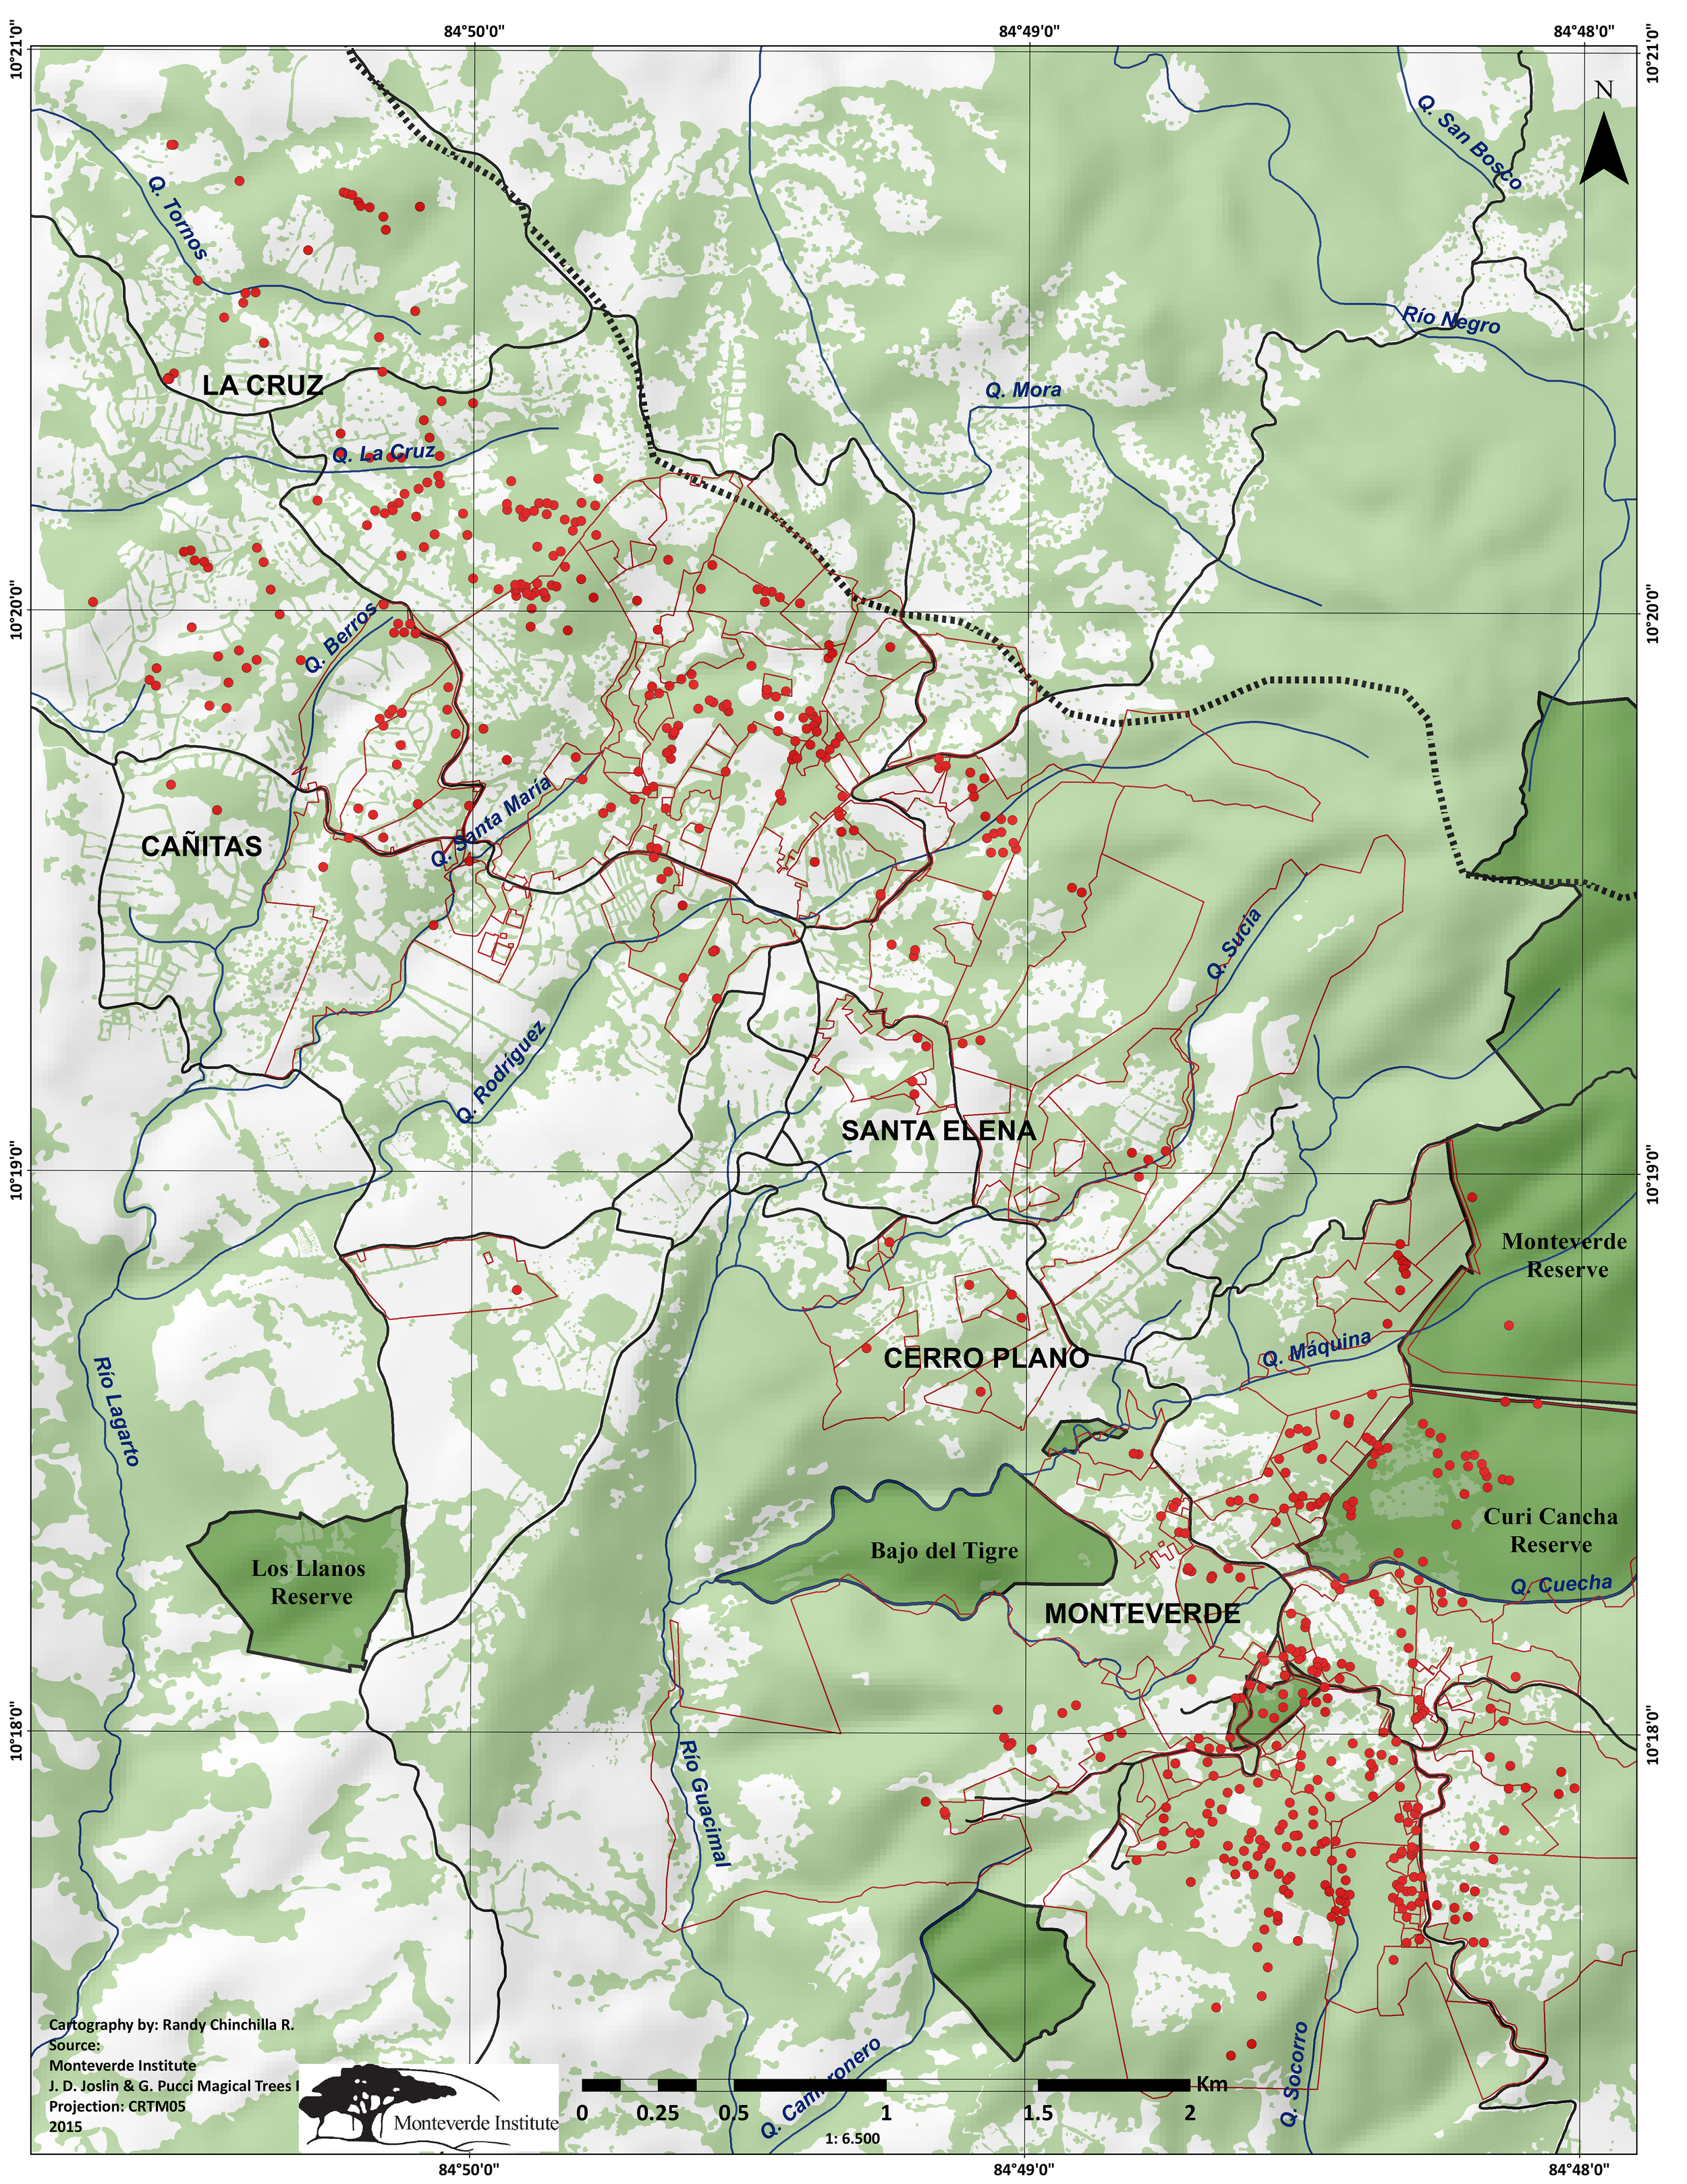 The red dots mark the location of individual trees and the red lines are property lines. (Click to enlarge).